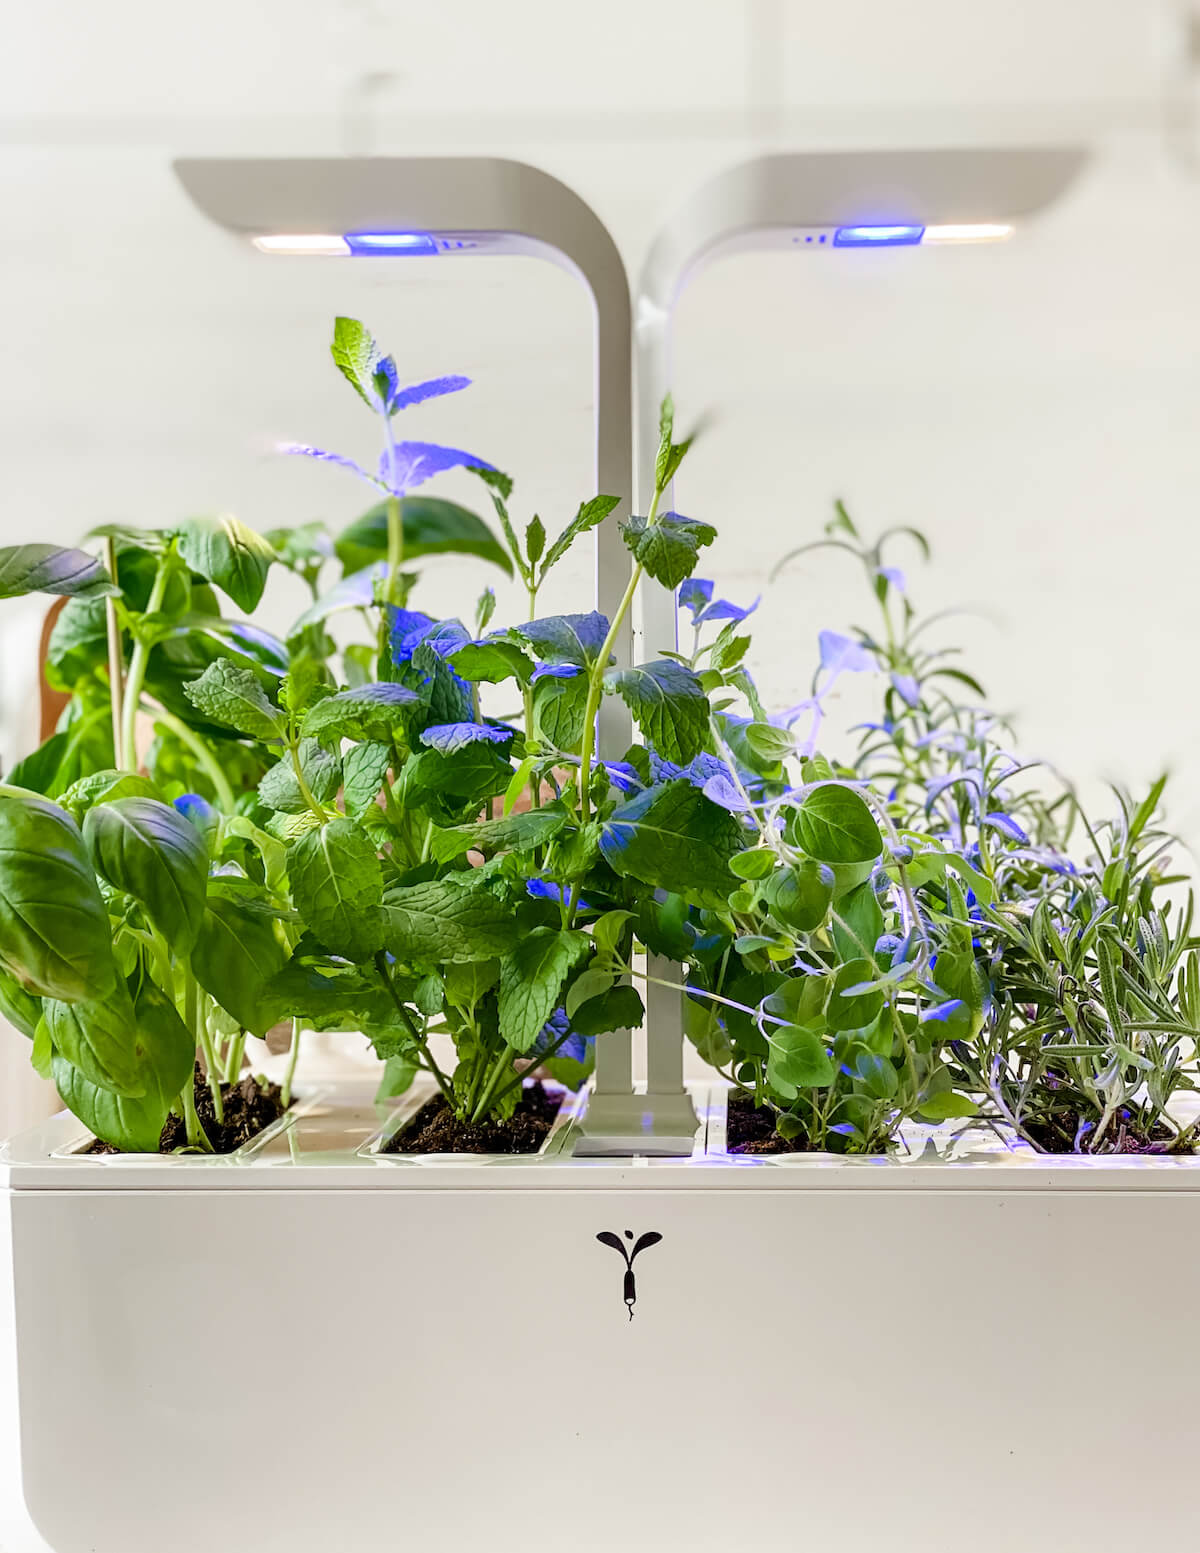 Veritable Herb garden with lights on